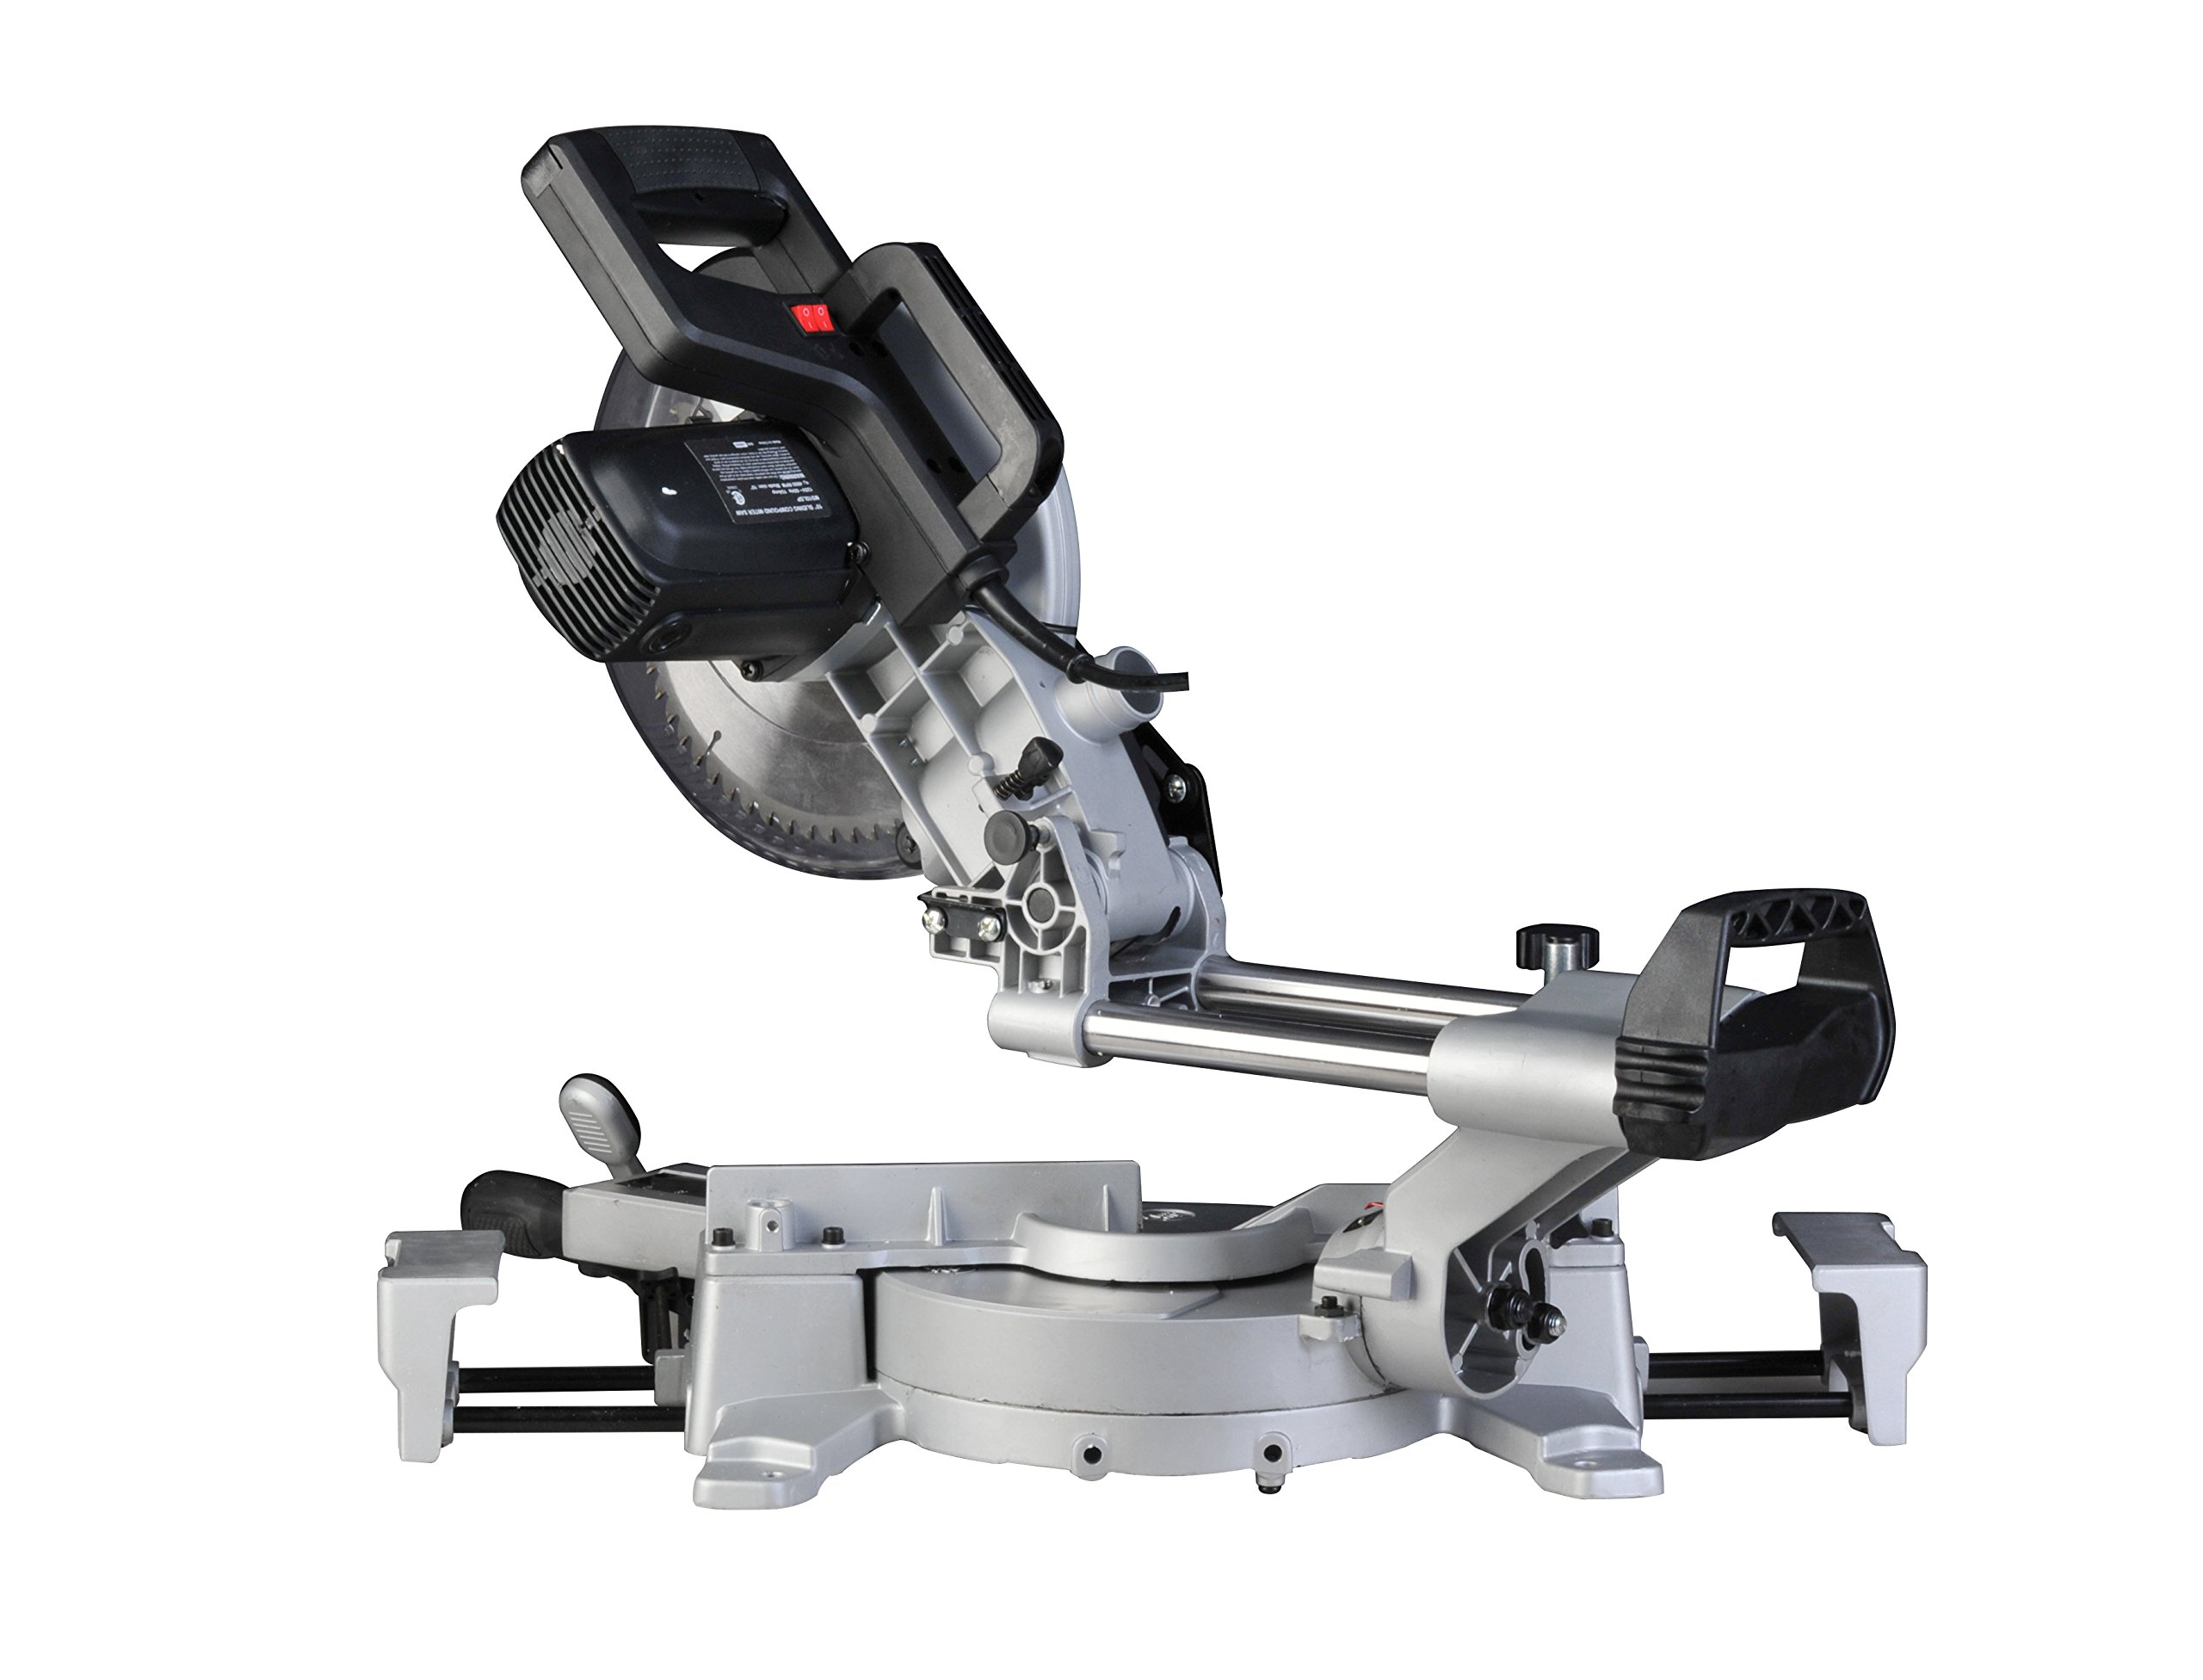 Doitpower 15-Amp 10-Inch Sliding Compound Miter Saw (Equipped with LED Work Light and CarryHandle ) by Doitpower (Image #3)